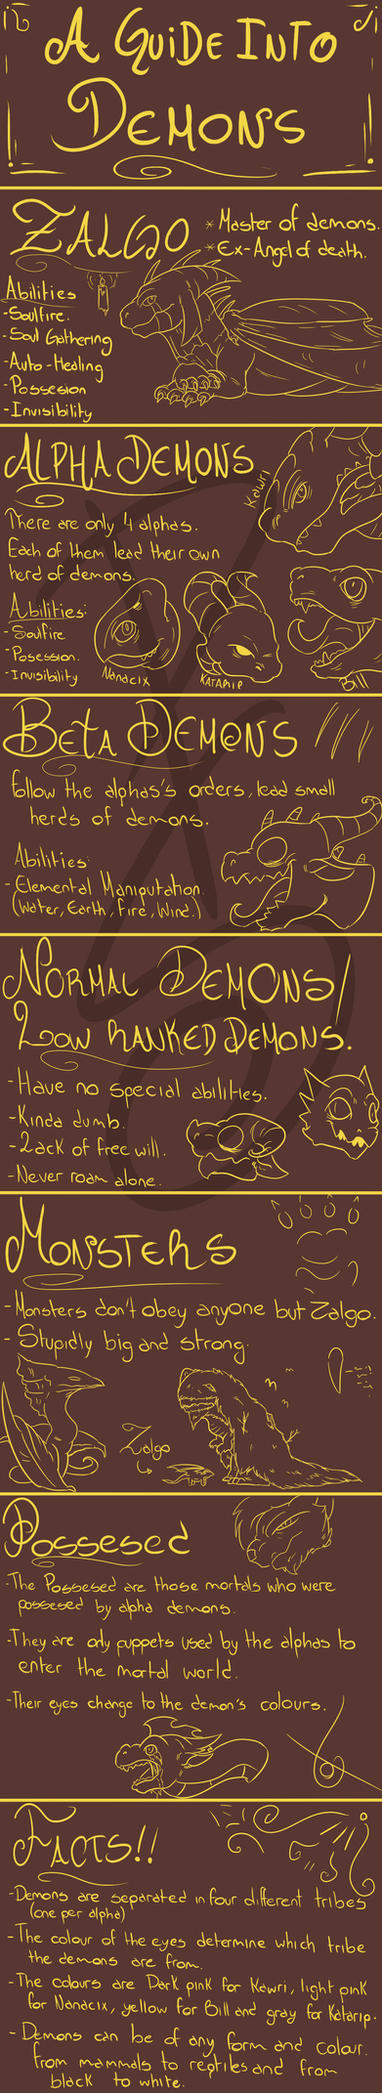 A Guide into Demons by PanDeSalvado